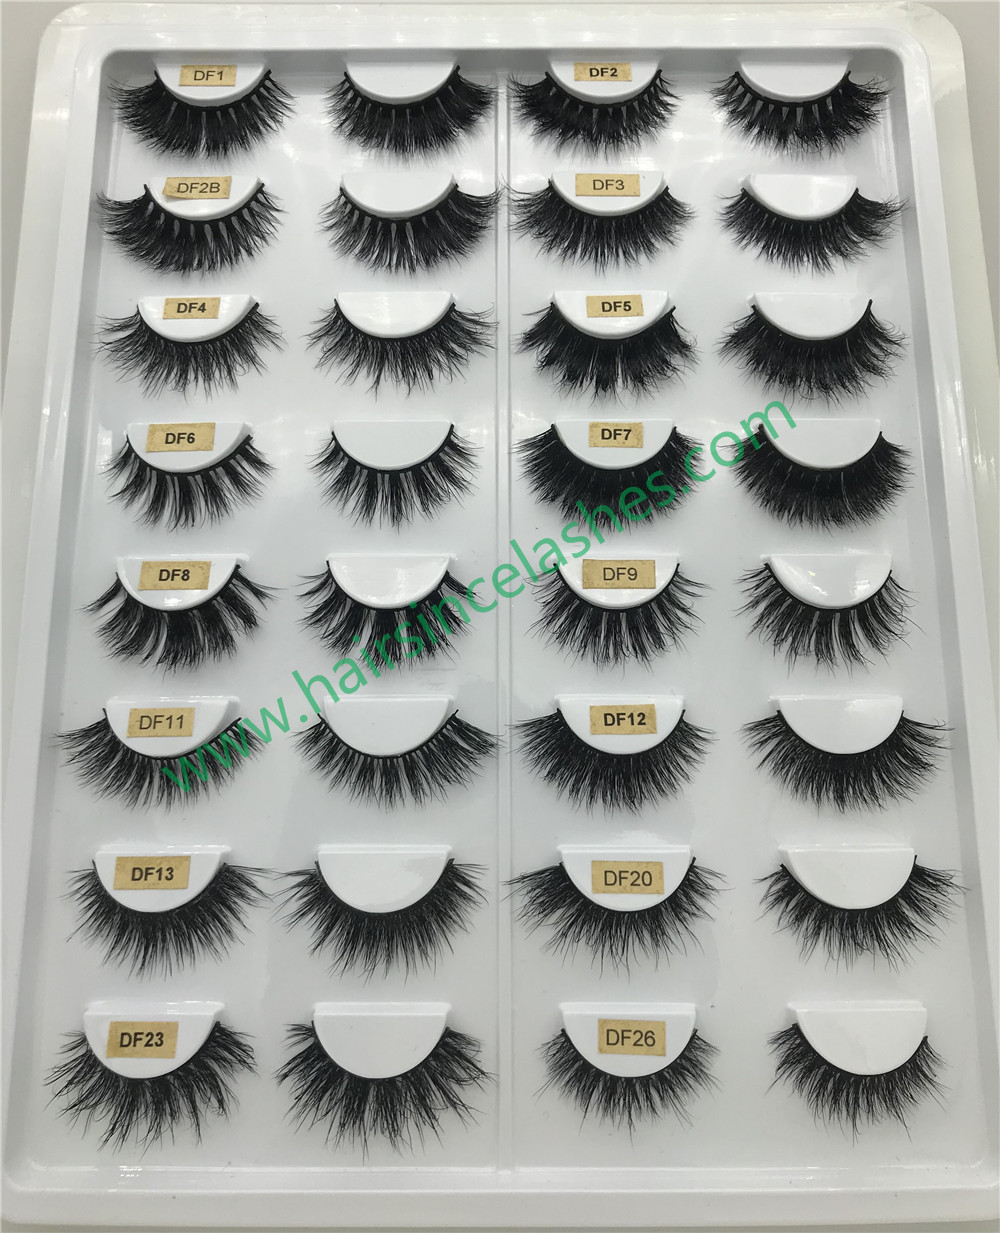 Mink hair lashes 3D styles natural styles 3D curls wholesale price - 副本 - 副本